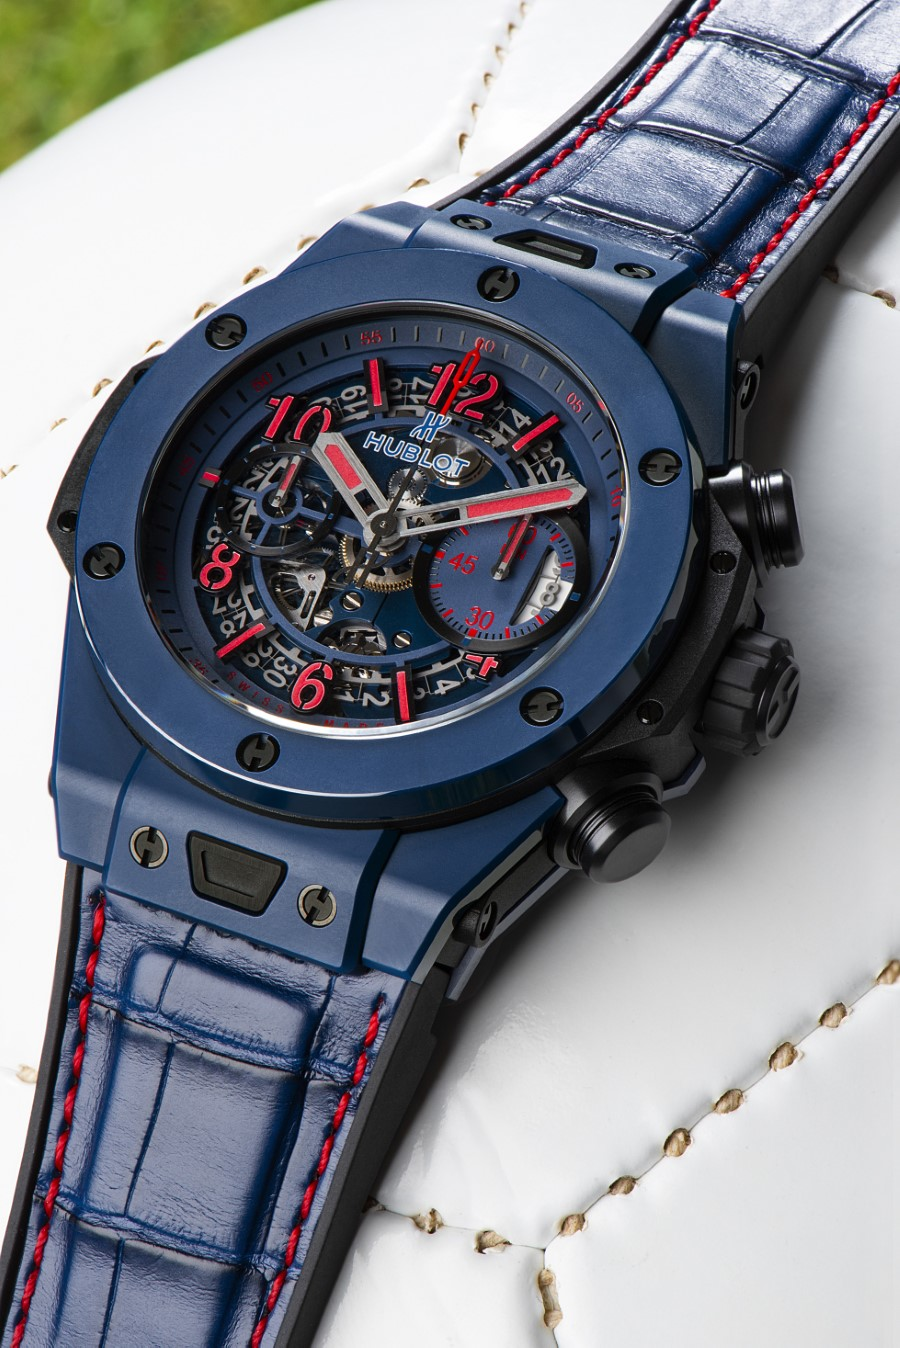 Hublot Big Bang Unico Special One - José Mourinho